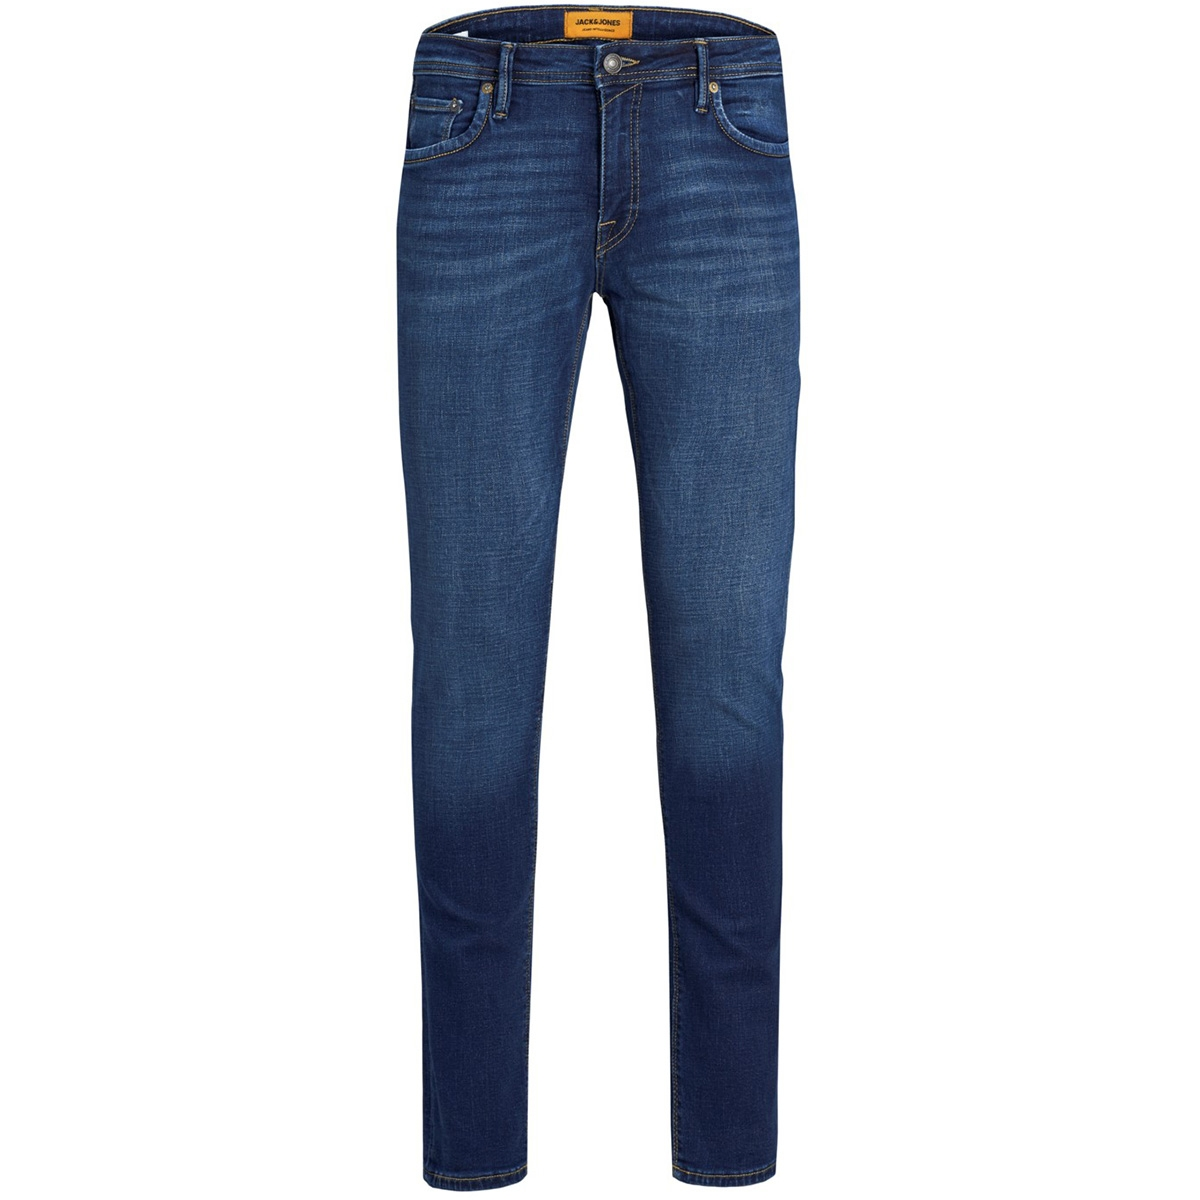 jjiglenn jjfelix am 889 50sps lid n 12160105 jack & jones jeans blue denim